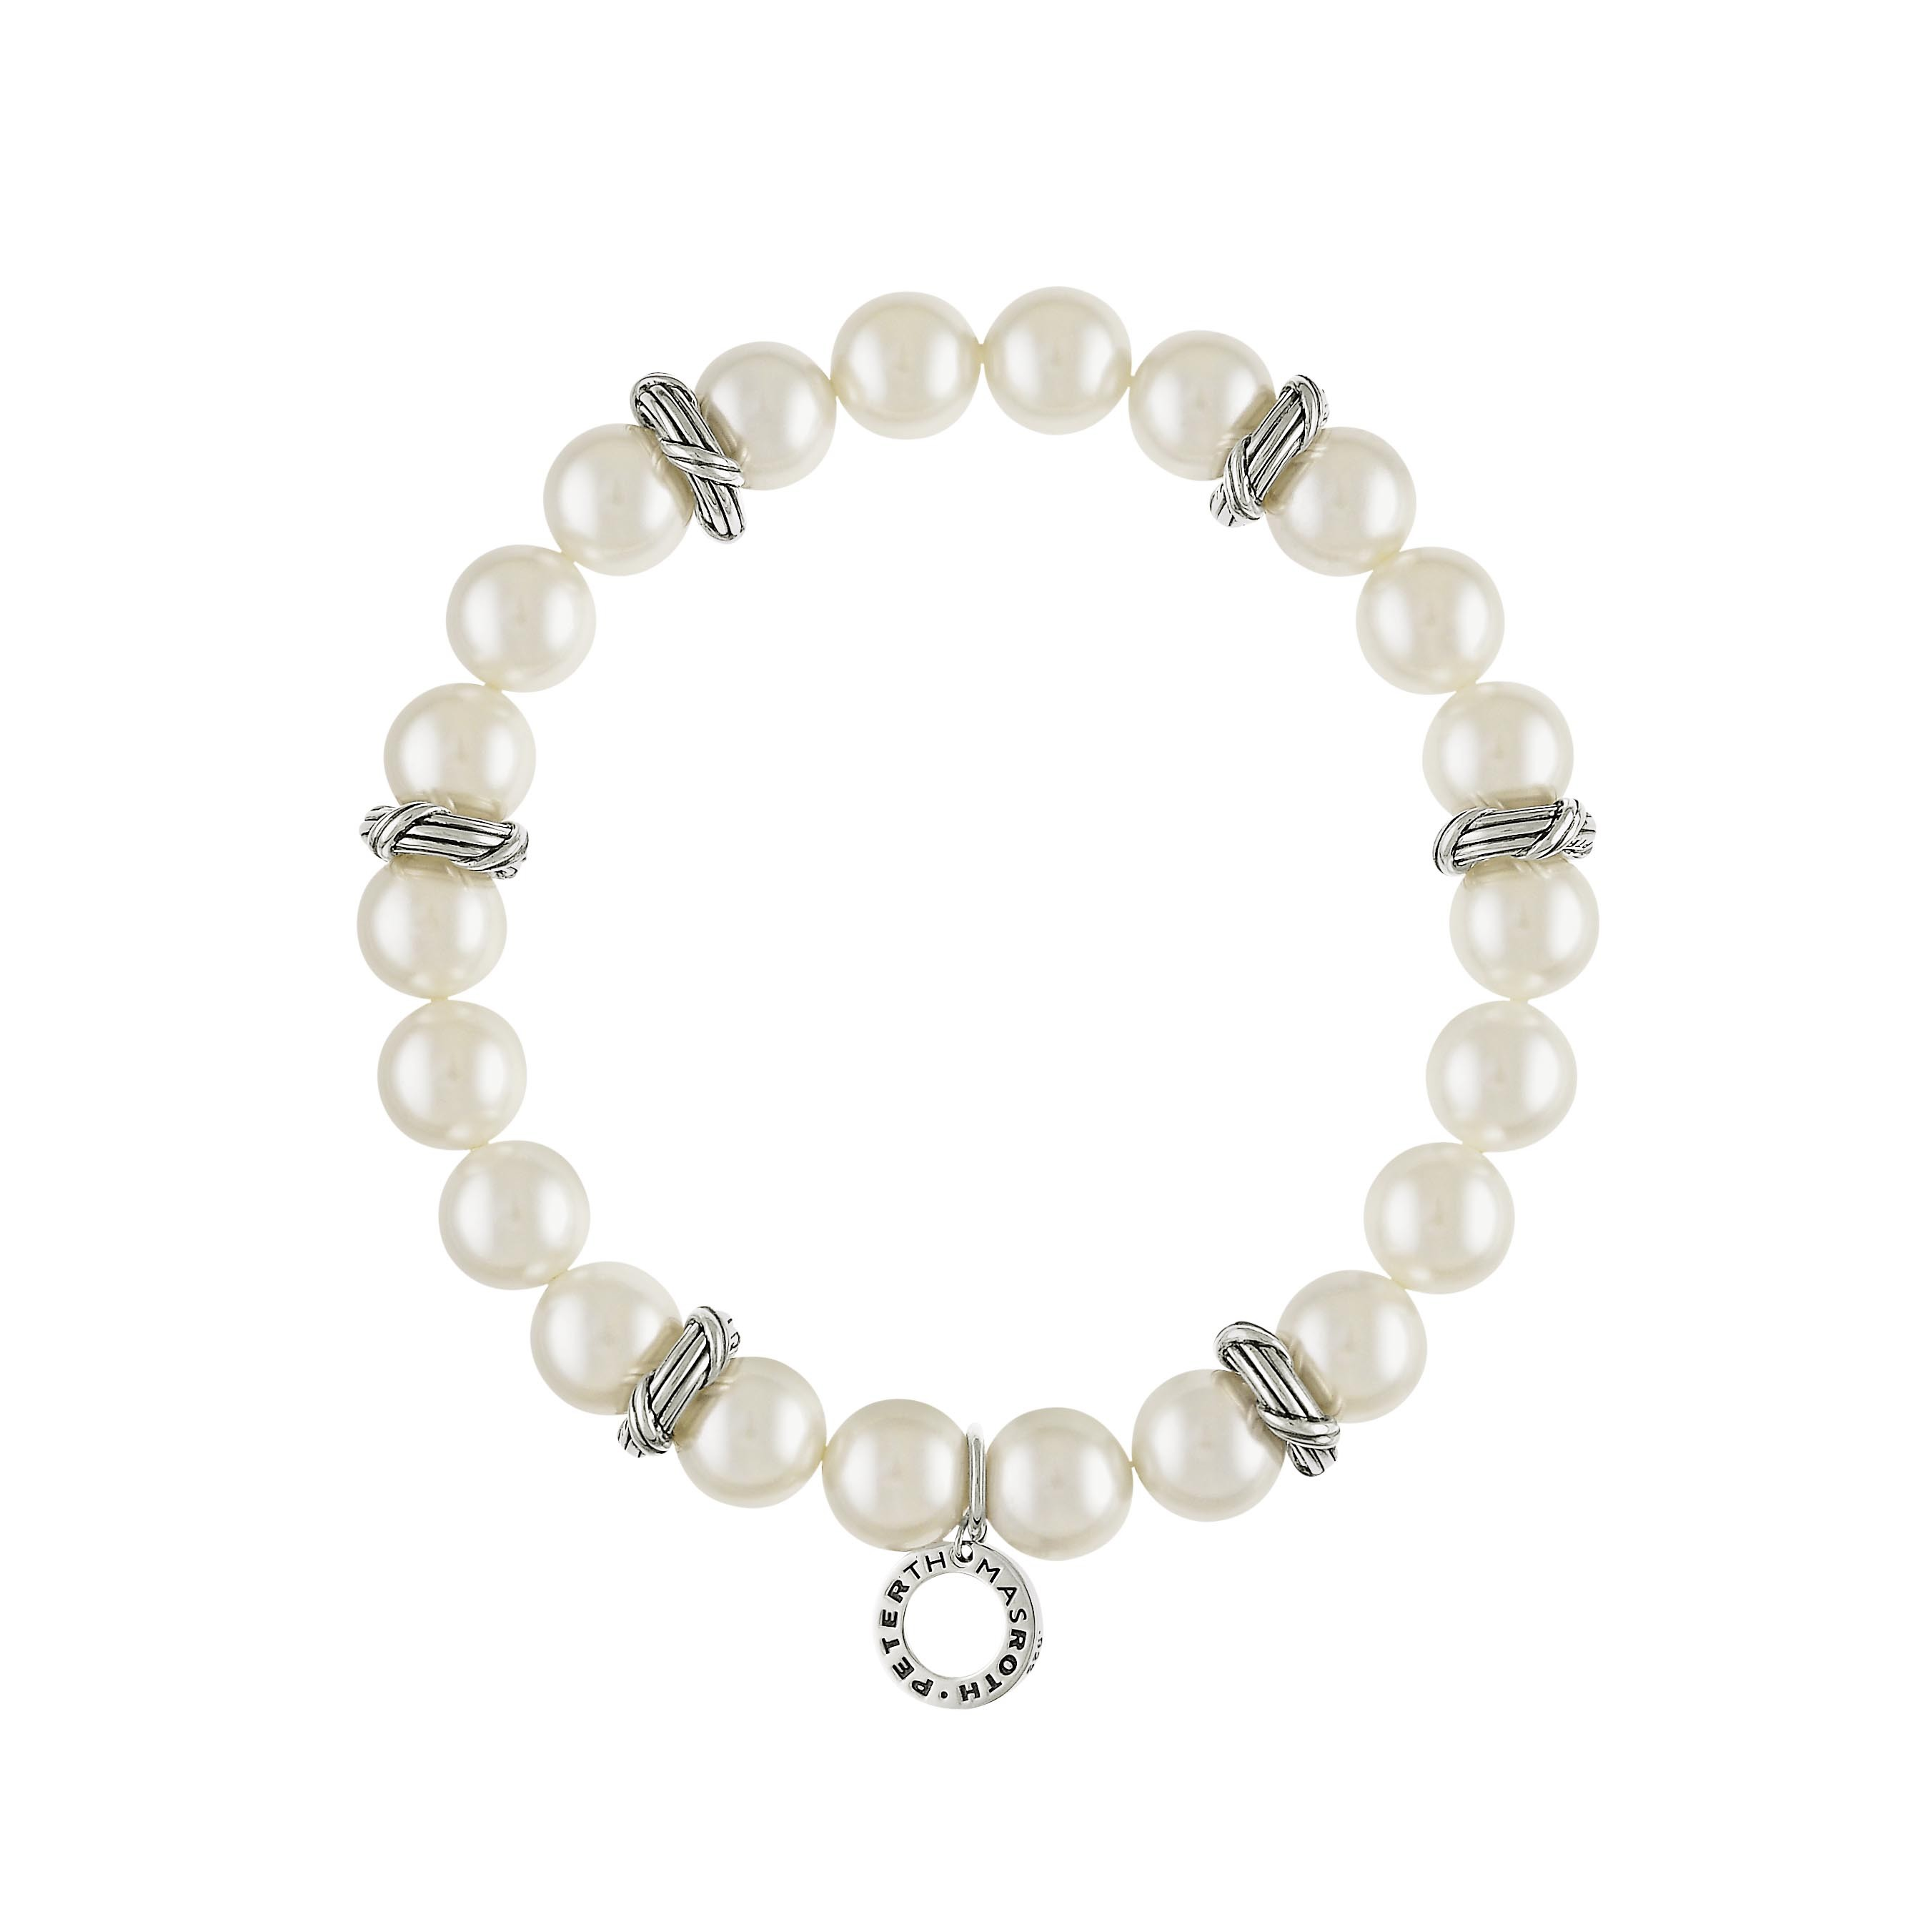 Bead Bracelet in 9mm white sea shell pearls and sterling silver